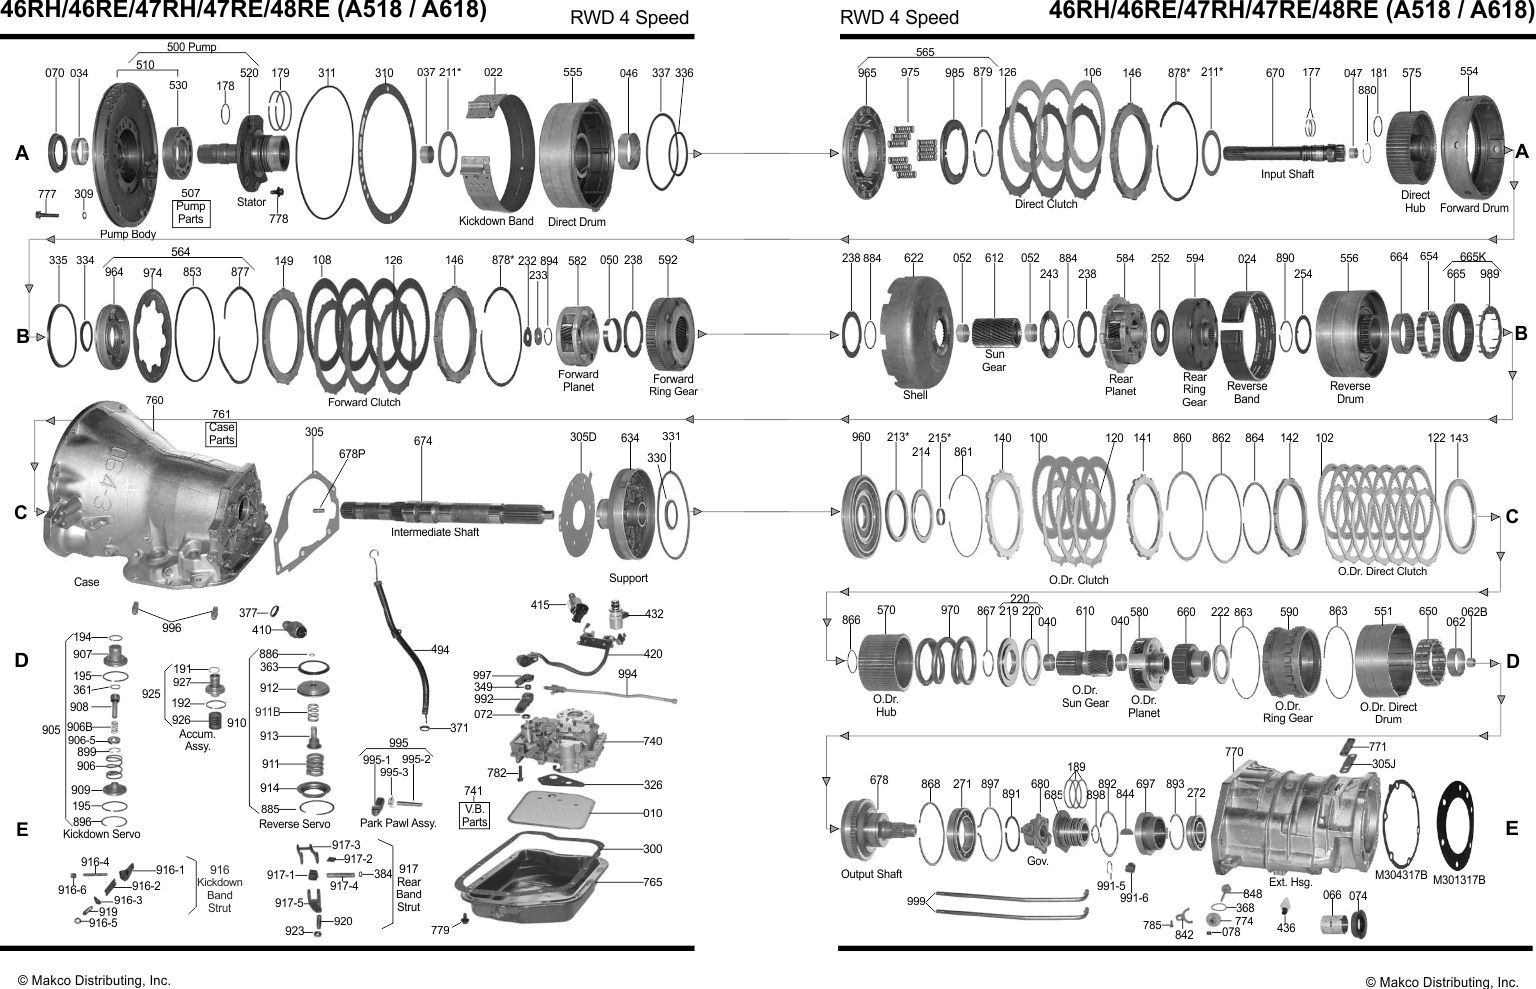 medium resolution of 518 automatic overdrive diagram a518 46re a618 47re 48re 2001 dodge ram 1500 46re transmission diagram dodge 46re transmission diagram